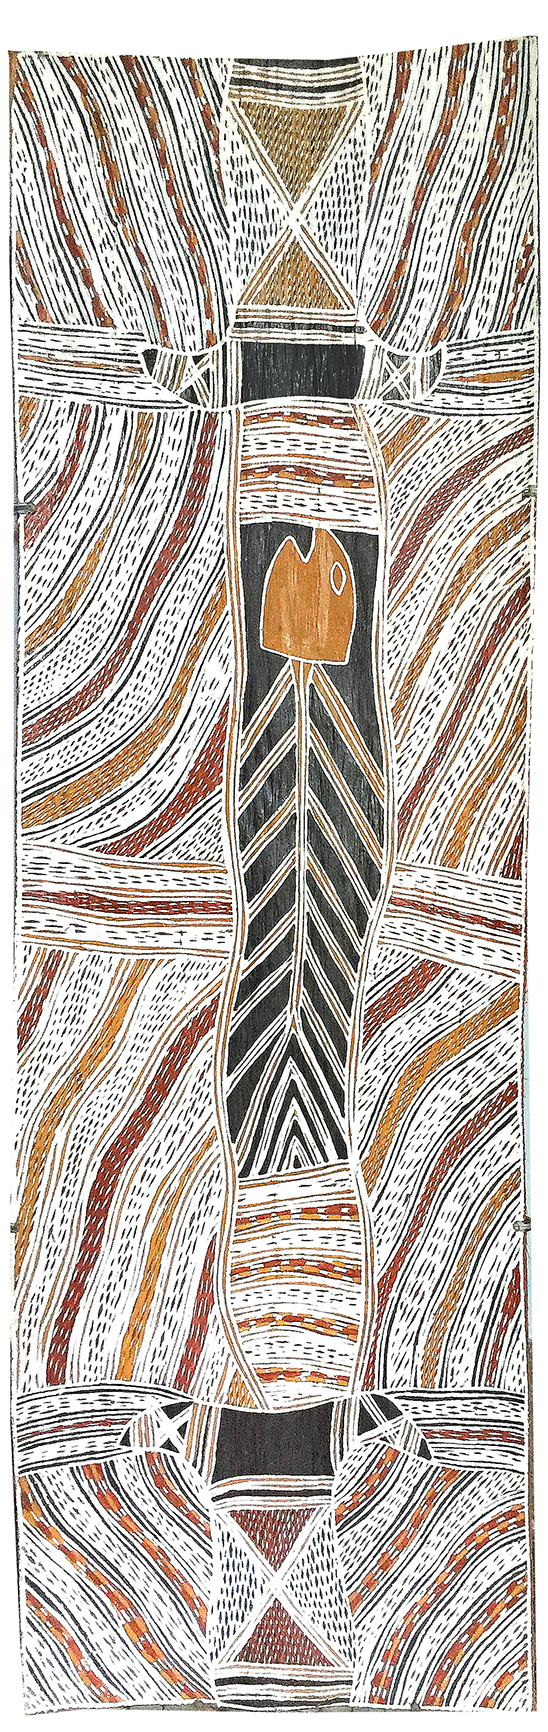 Artiste : Galuma Maymuru. Format : 101 x 31 cm. Piments naturels sur écorce d'eucalyptus. © Photo : Aboriginal Signature, with the courtesy of Yirrkala Buku Larrngay Mulka.